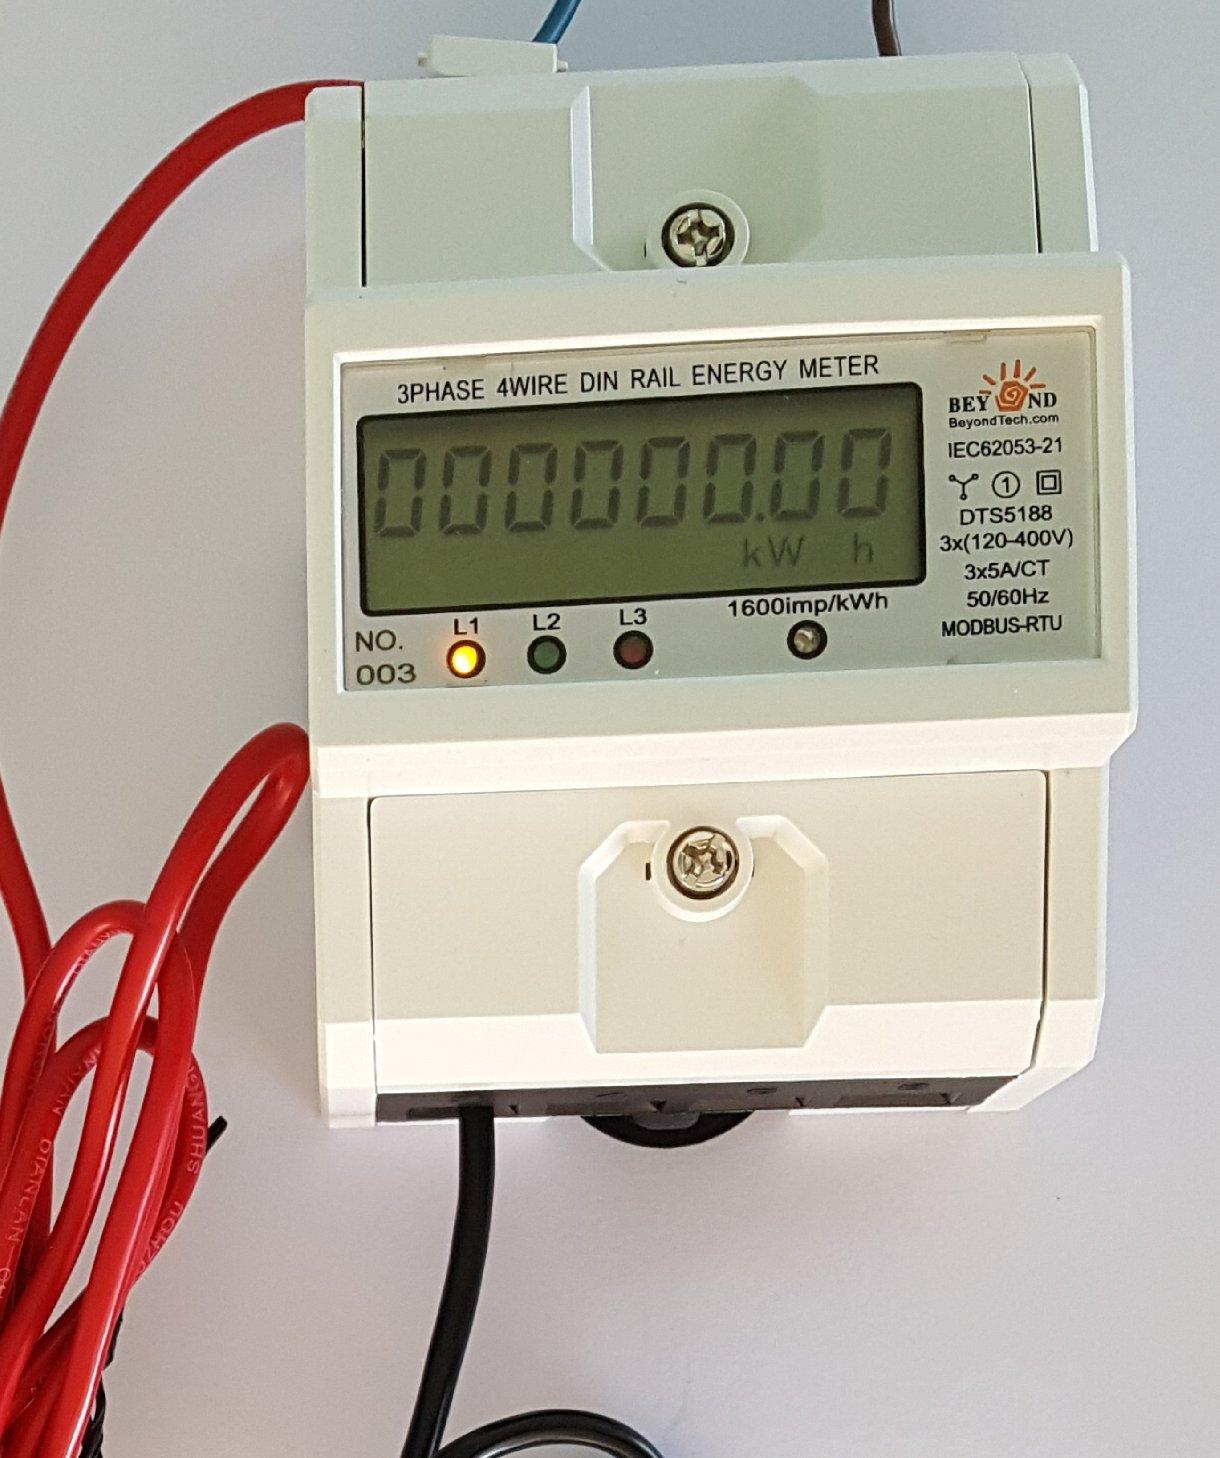 Combo Kwh Energy Sub Meter 1 2 Or 3 Phase Up To 4 Wires 120 400 Wire Four Single 240 Volt 60 Hz A 208 Volts 100 Amps Internal Cts Usa